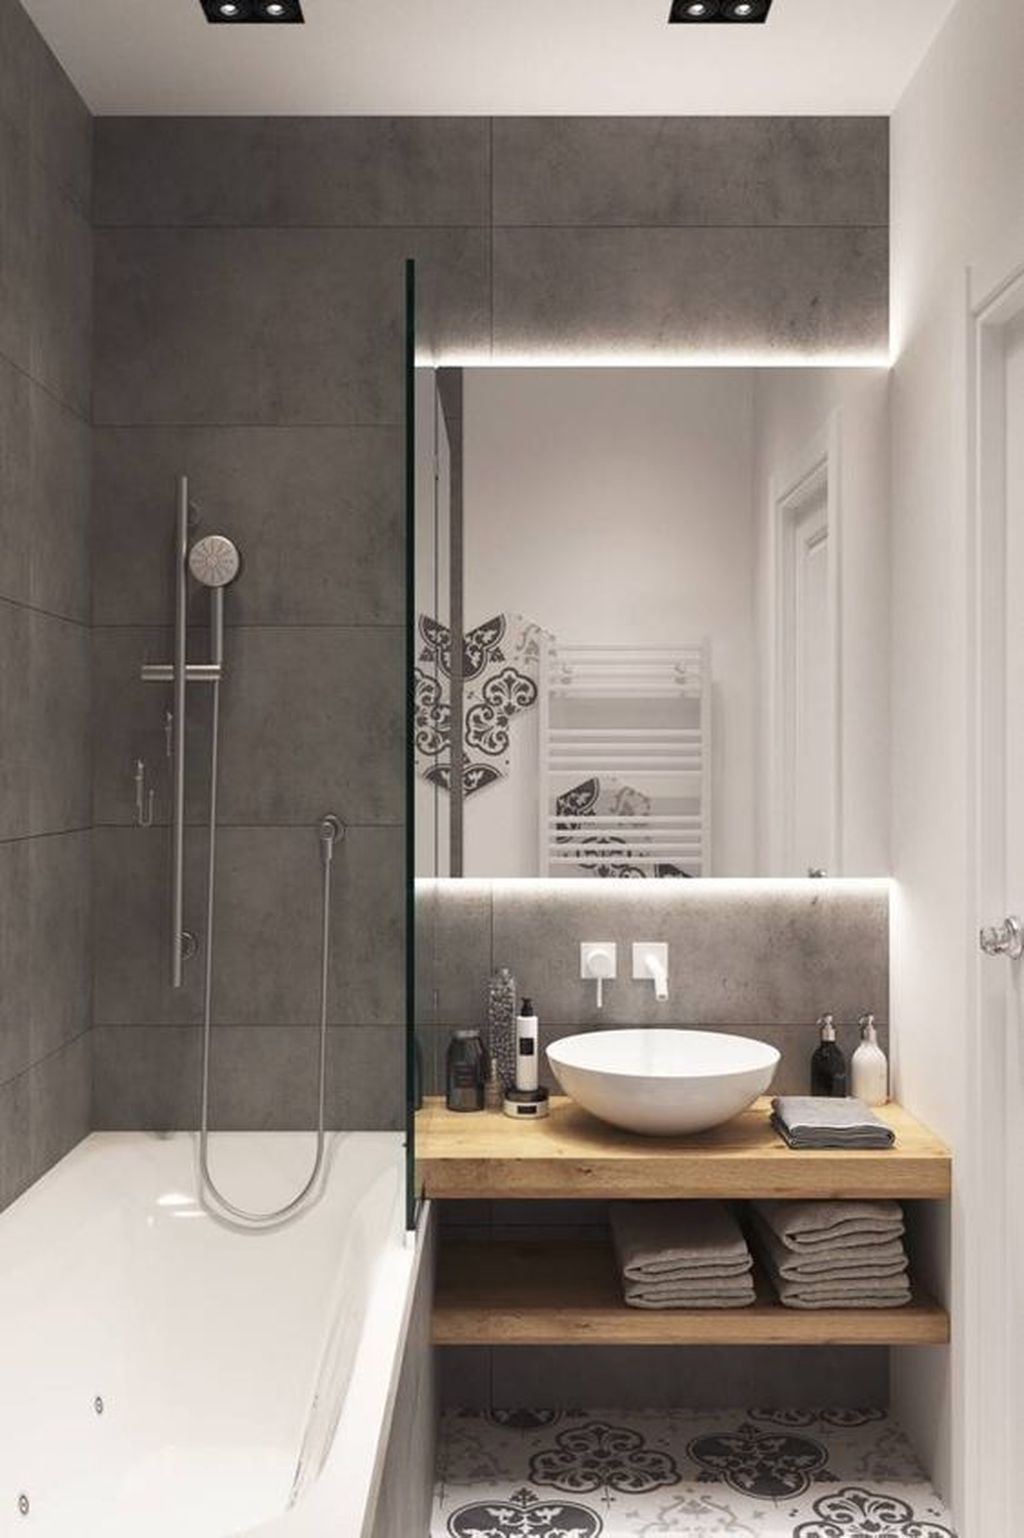 32 Amazing Small Bathroom Ideas To Maximize Space Small Bathroom Makeover Bathroom Interior Design Bathroom Interior